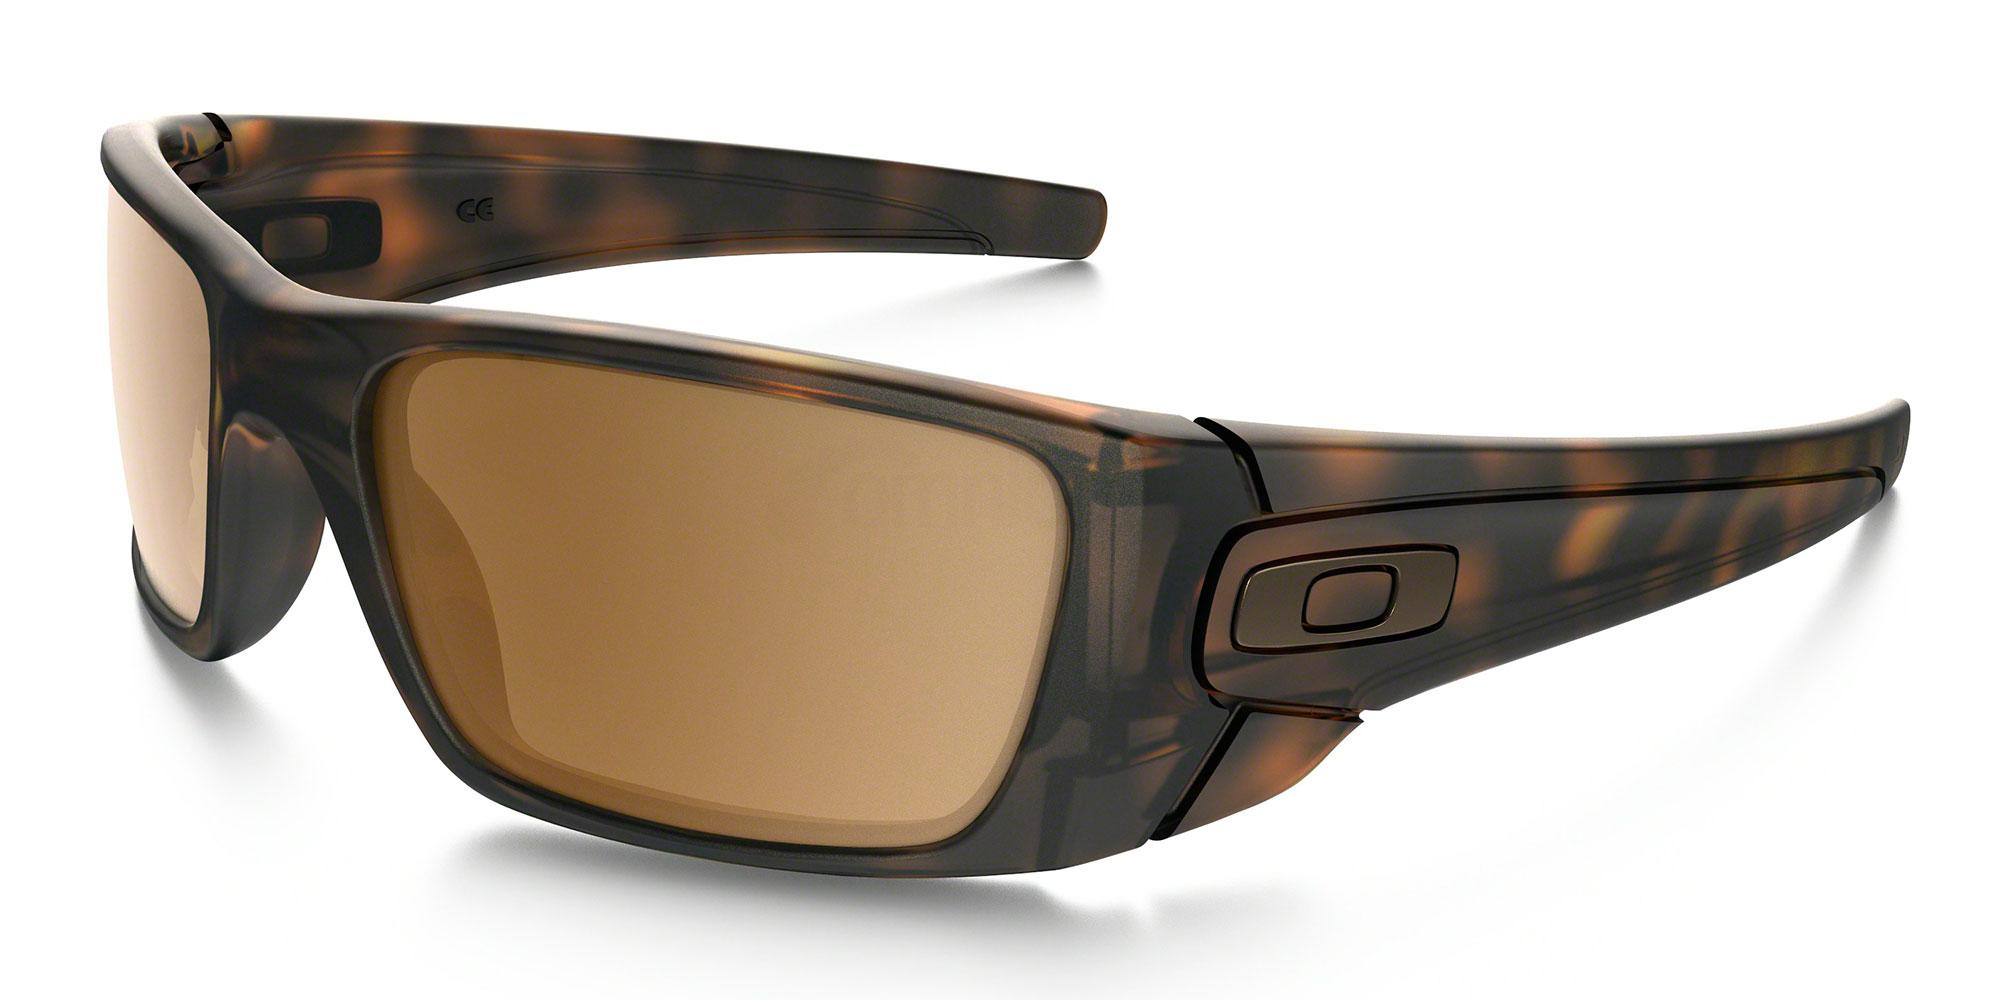 9096H5 OO9096 FUEL CELL (Standard) (3/3) , Oakley